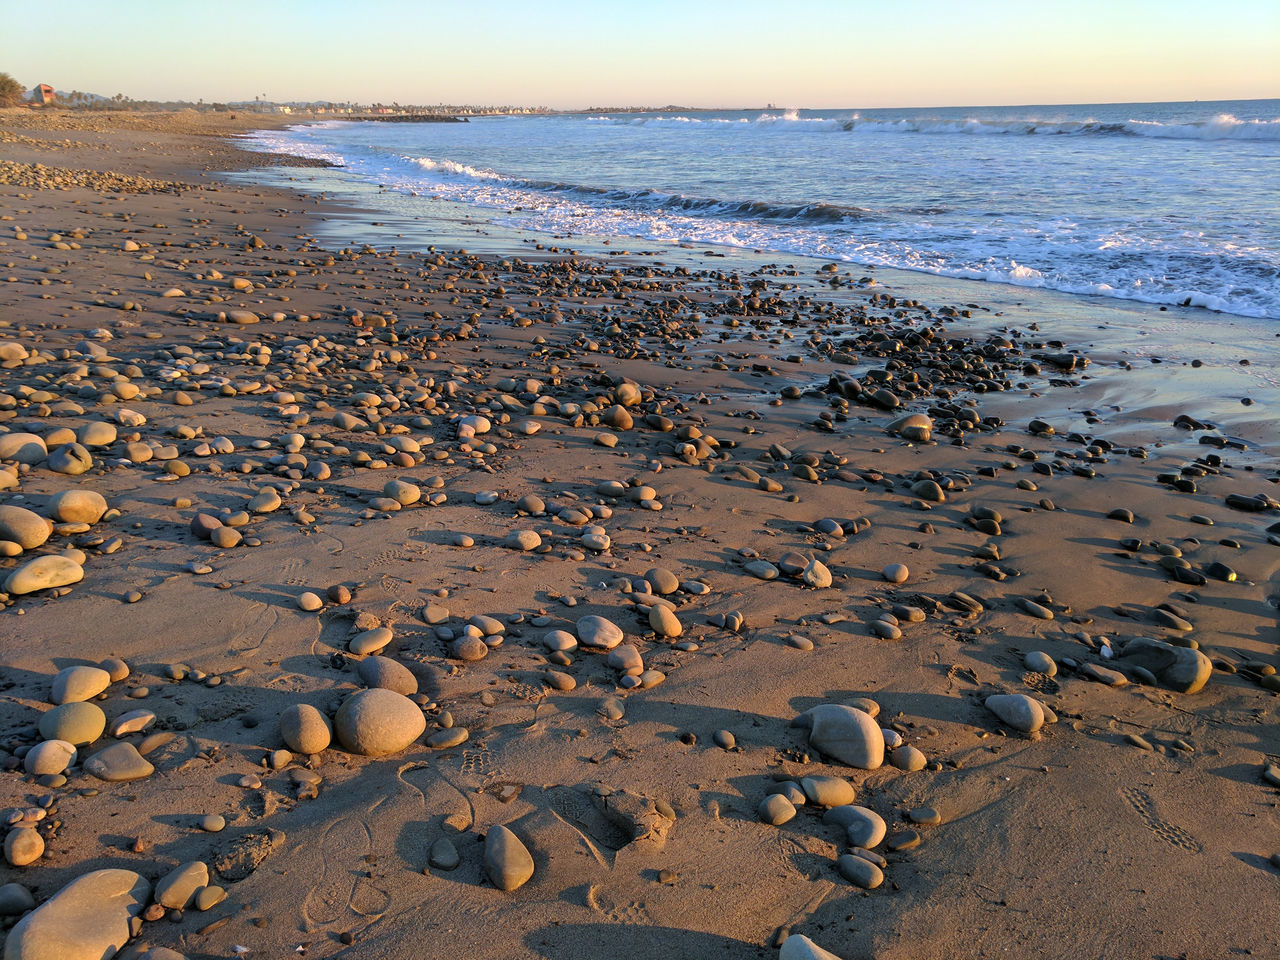 foot prints, rocks and pebbles in sand along ocean side. Beach Coastline Day Footprints Footprints In The Sand Horizon Over Water Nature No People Ocean Oceanscape Outdoors Pebbles And Stones Pebbles On A Beach Rocky Shoreline Sand Sea Sky Water Wave